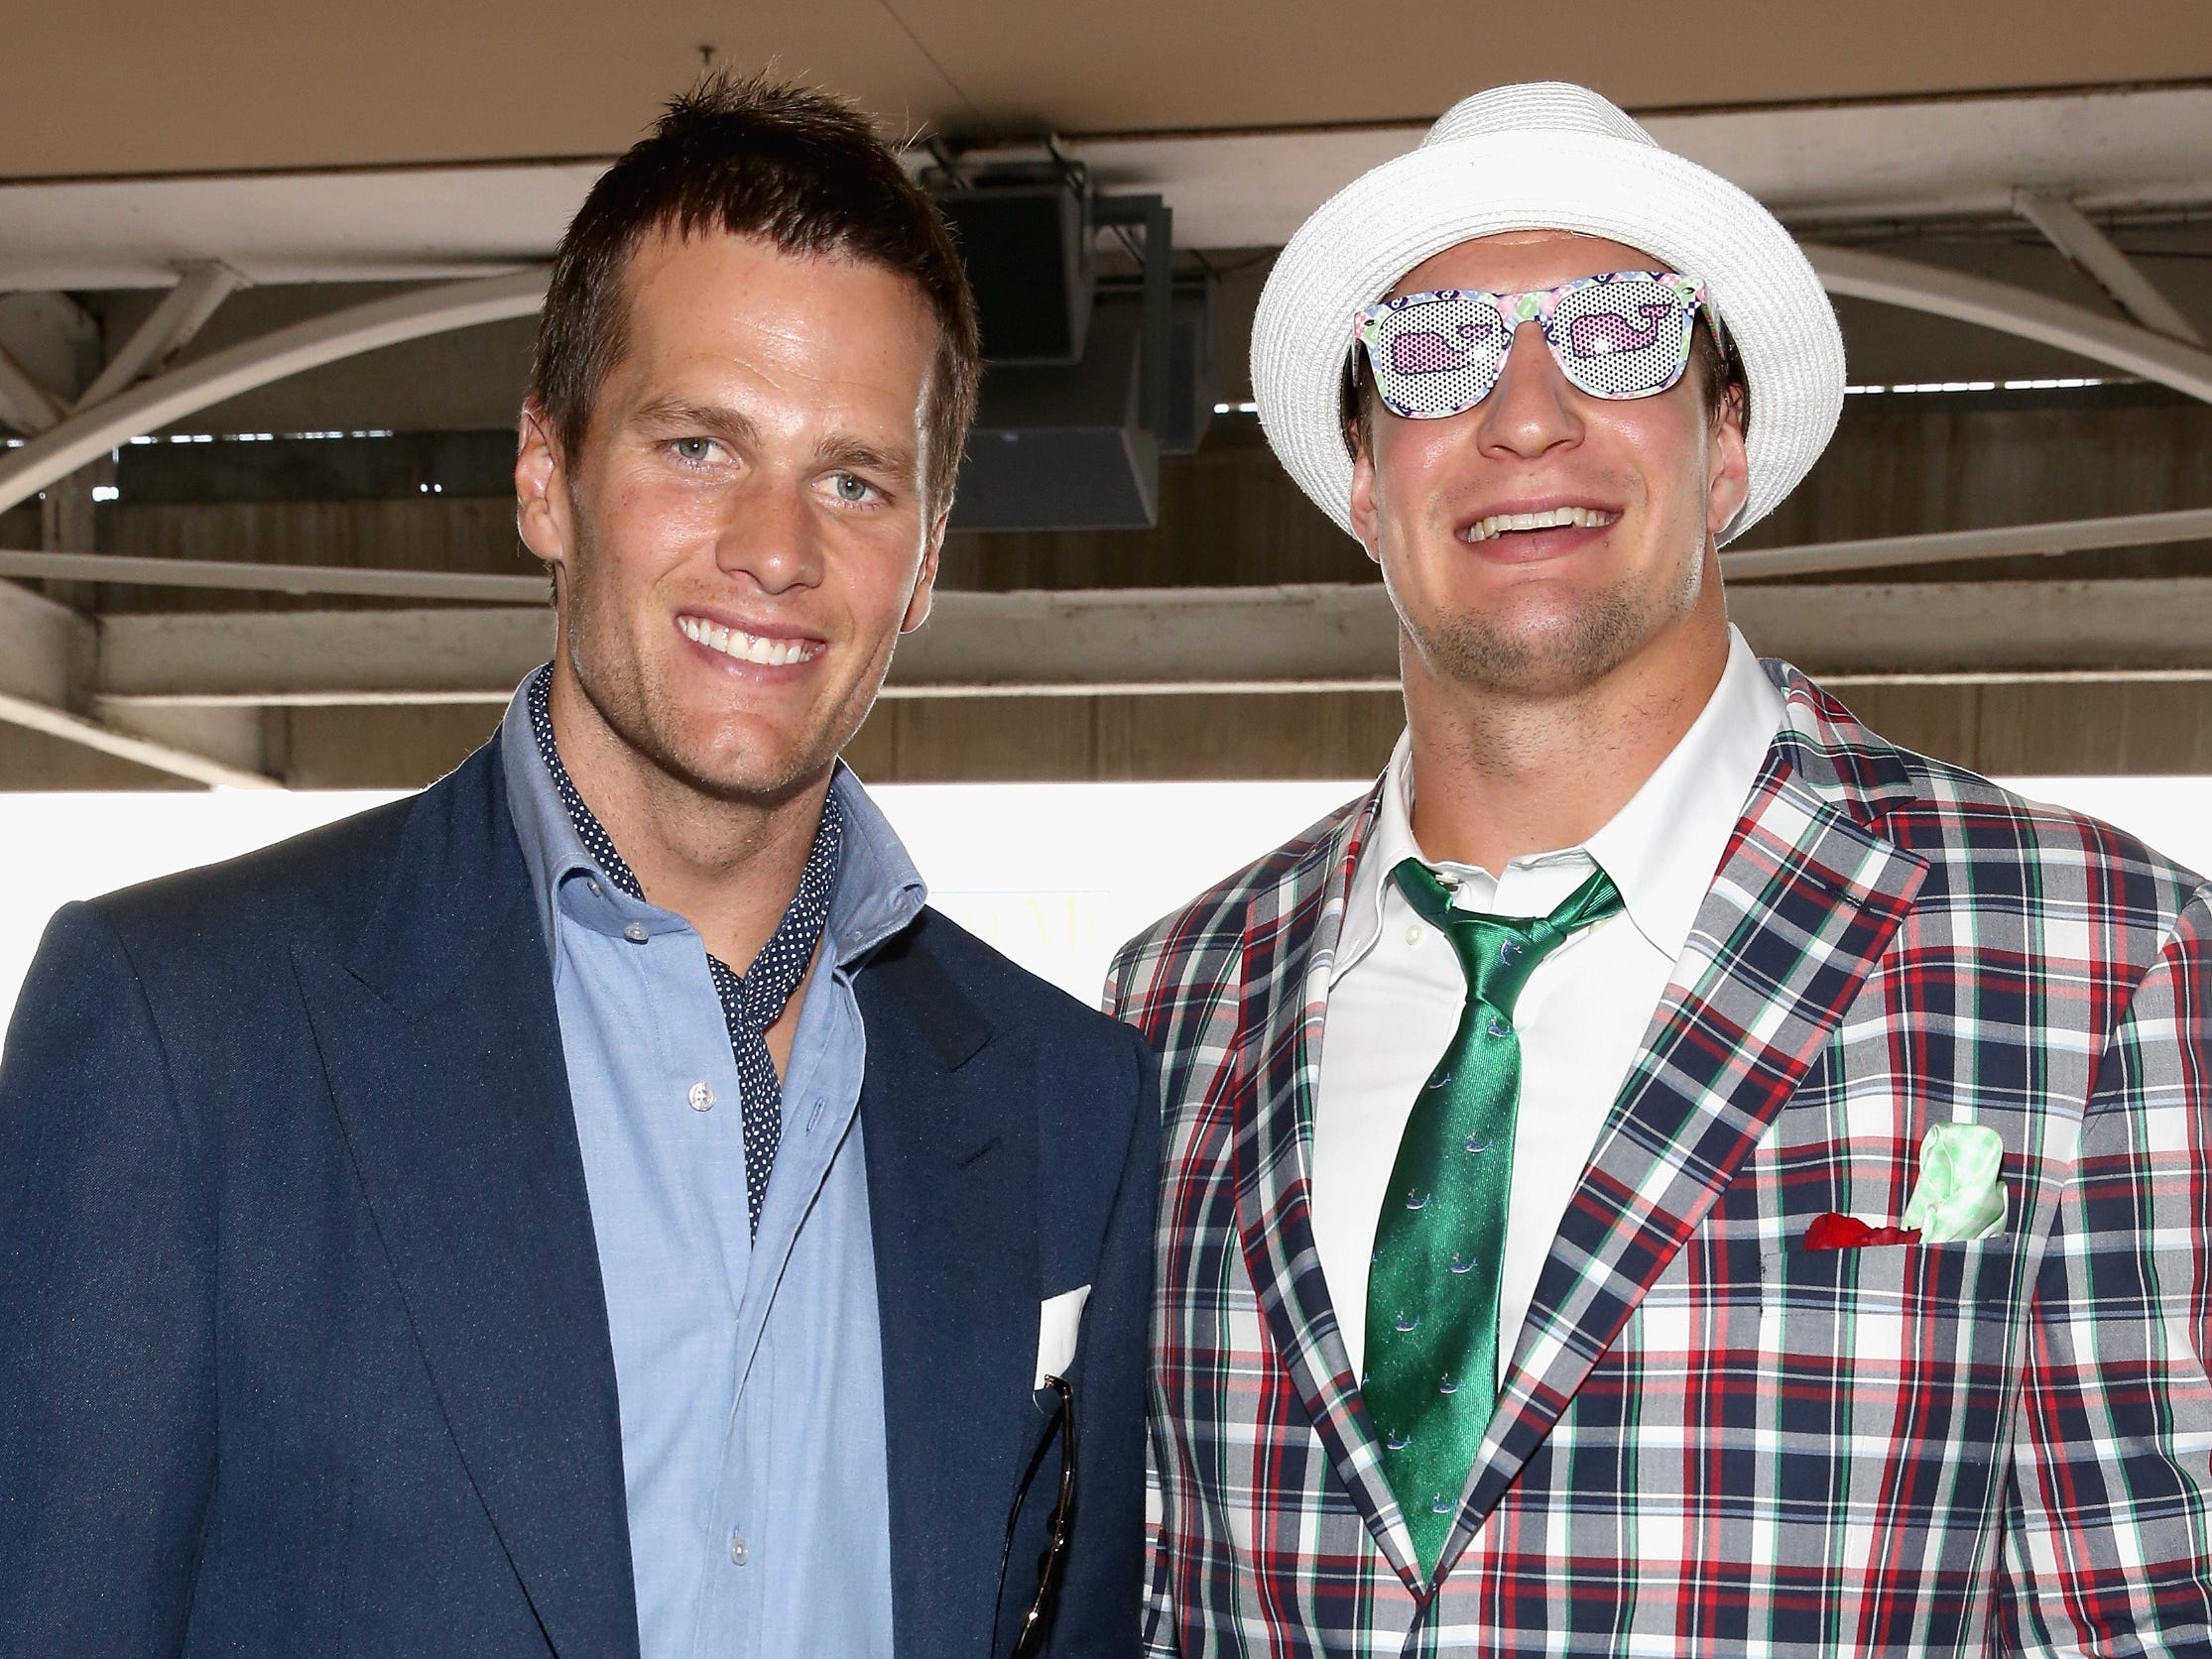 May 2, 2015: Tom Brady and Rob Gronkowski attend the 141st Kentucky Derby at Churchill Downs.